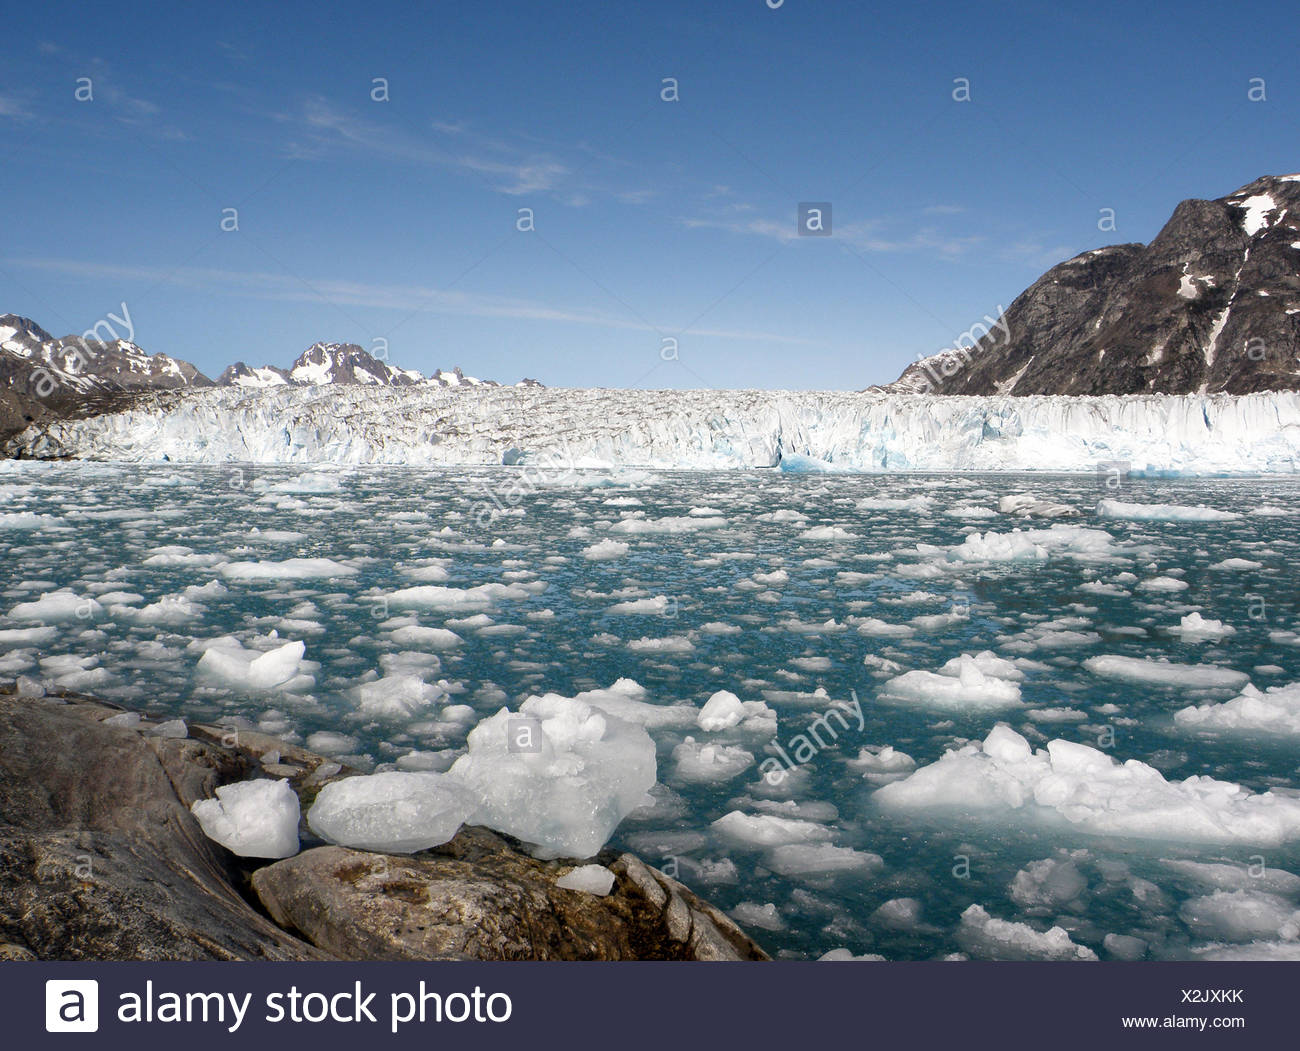 icy fascination - Stock Image